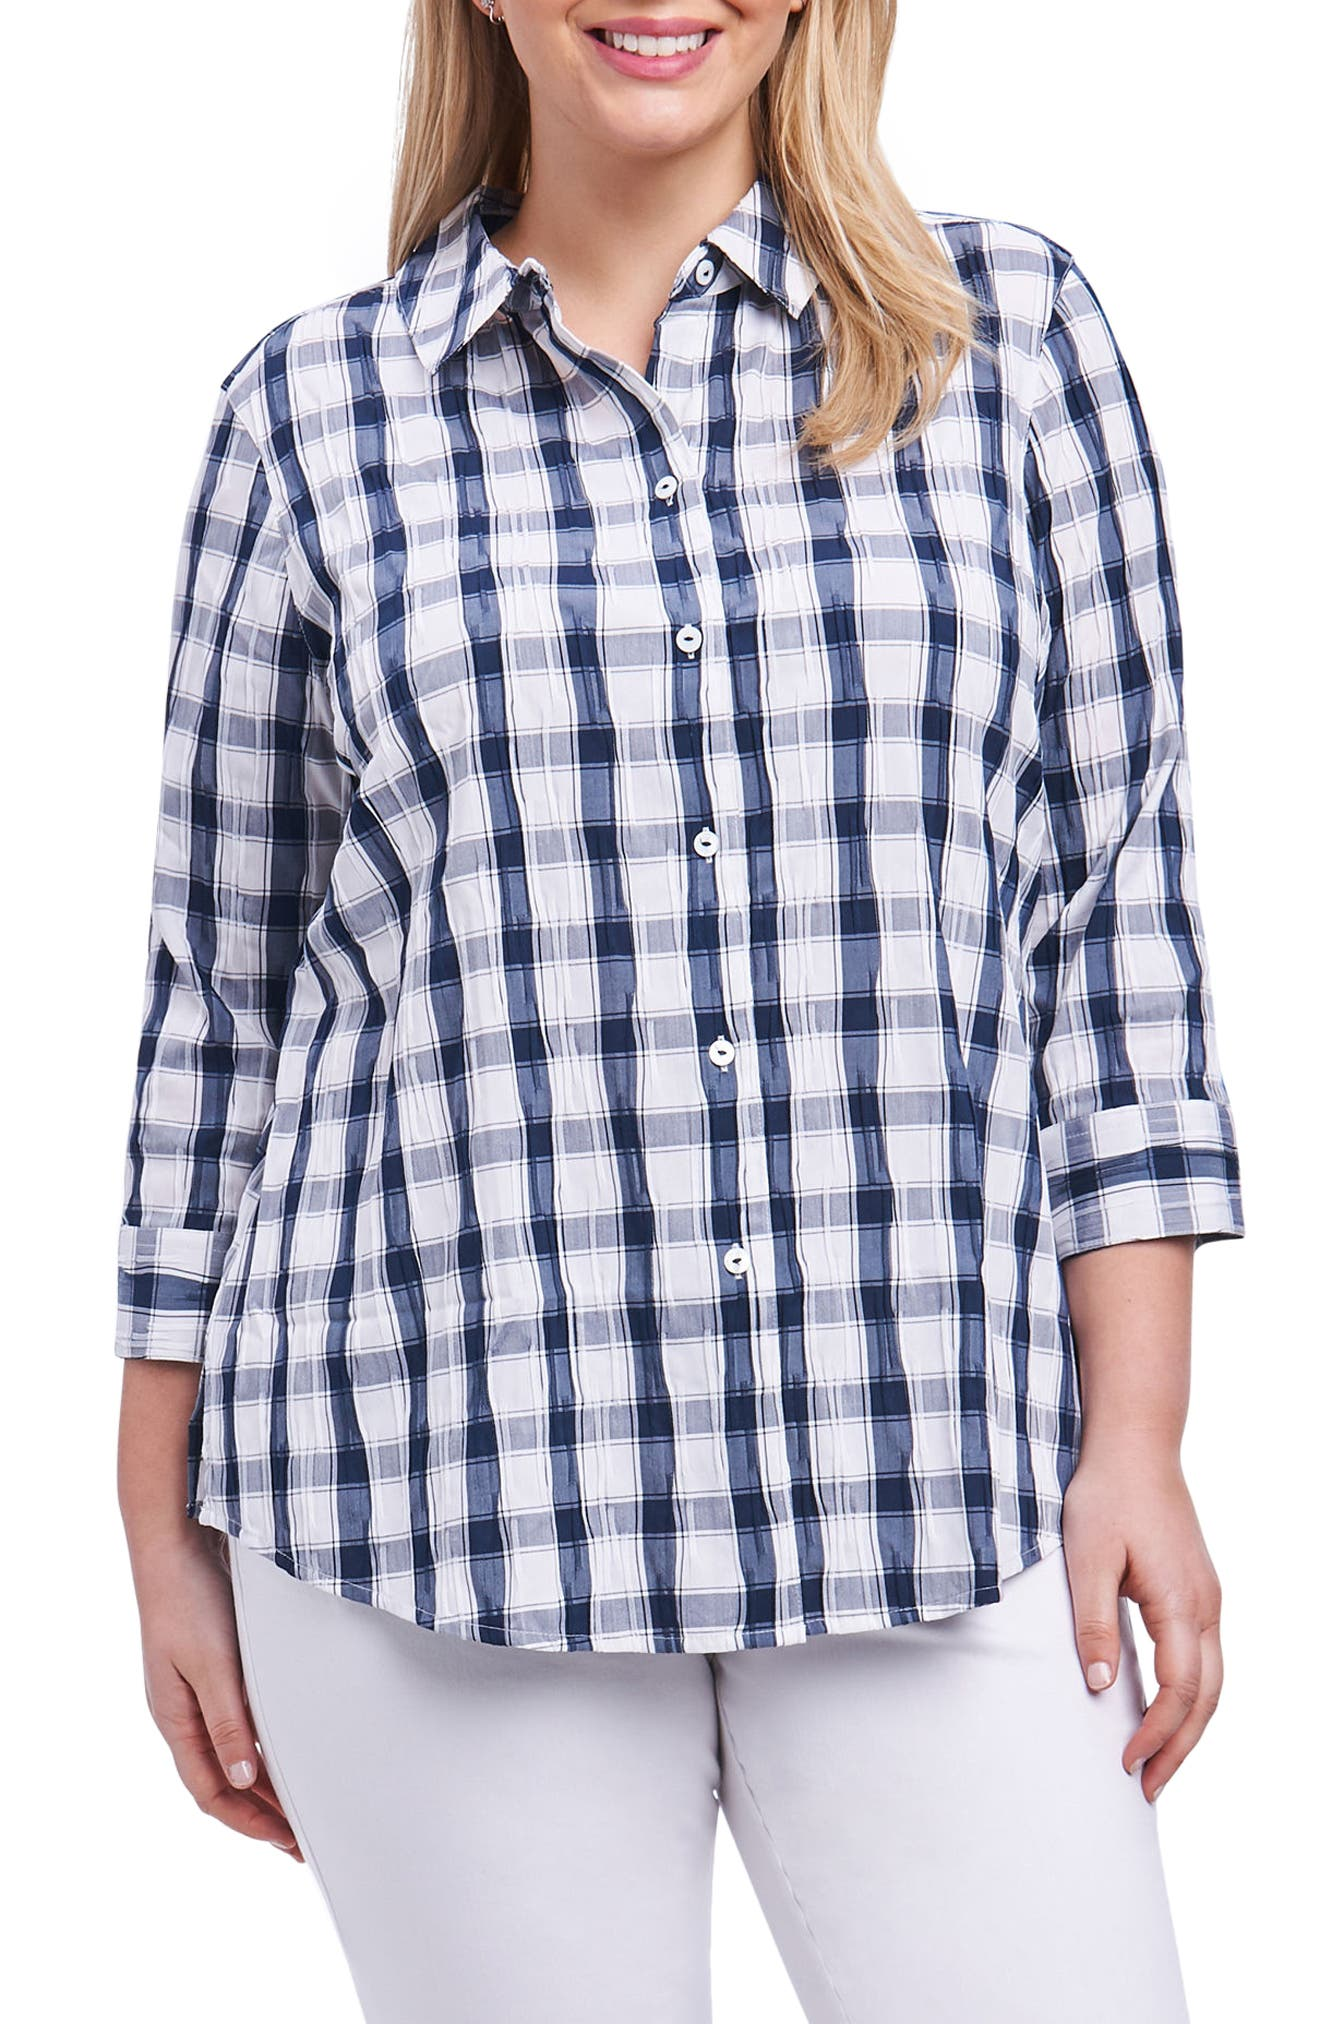 Sue Shaped Fit Crinkle Plaid Shirt,                         Main,                         color, 415